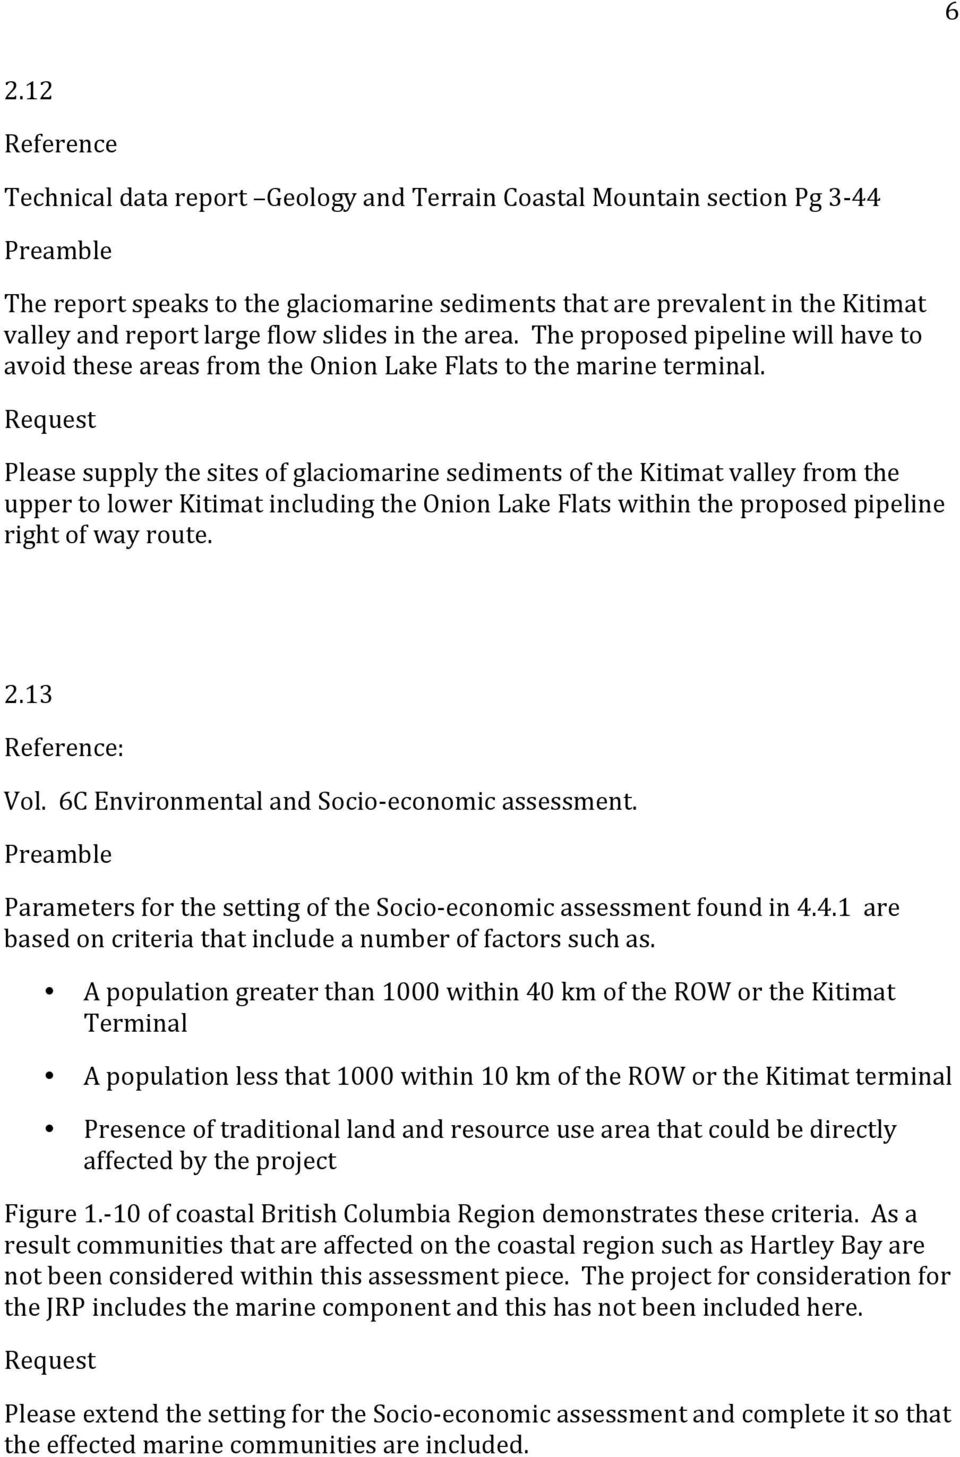 Please supply the sites of glaciomarine sediments of the Kitimat valley from the upper to lower Kitimat including the Onion Lake Flats within the proposed pipeline right of way route. 2.13 : Vol.